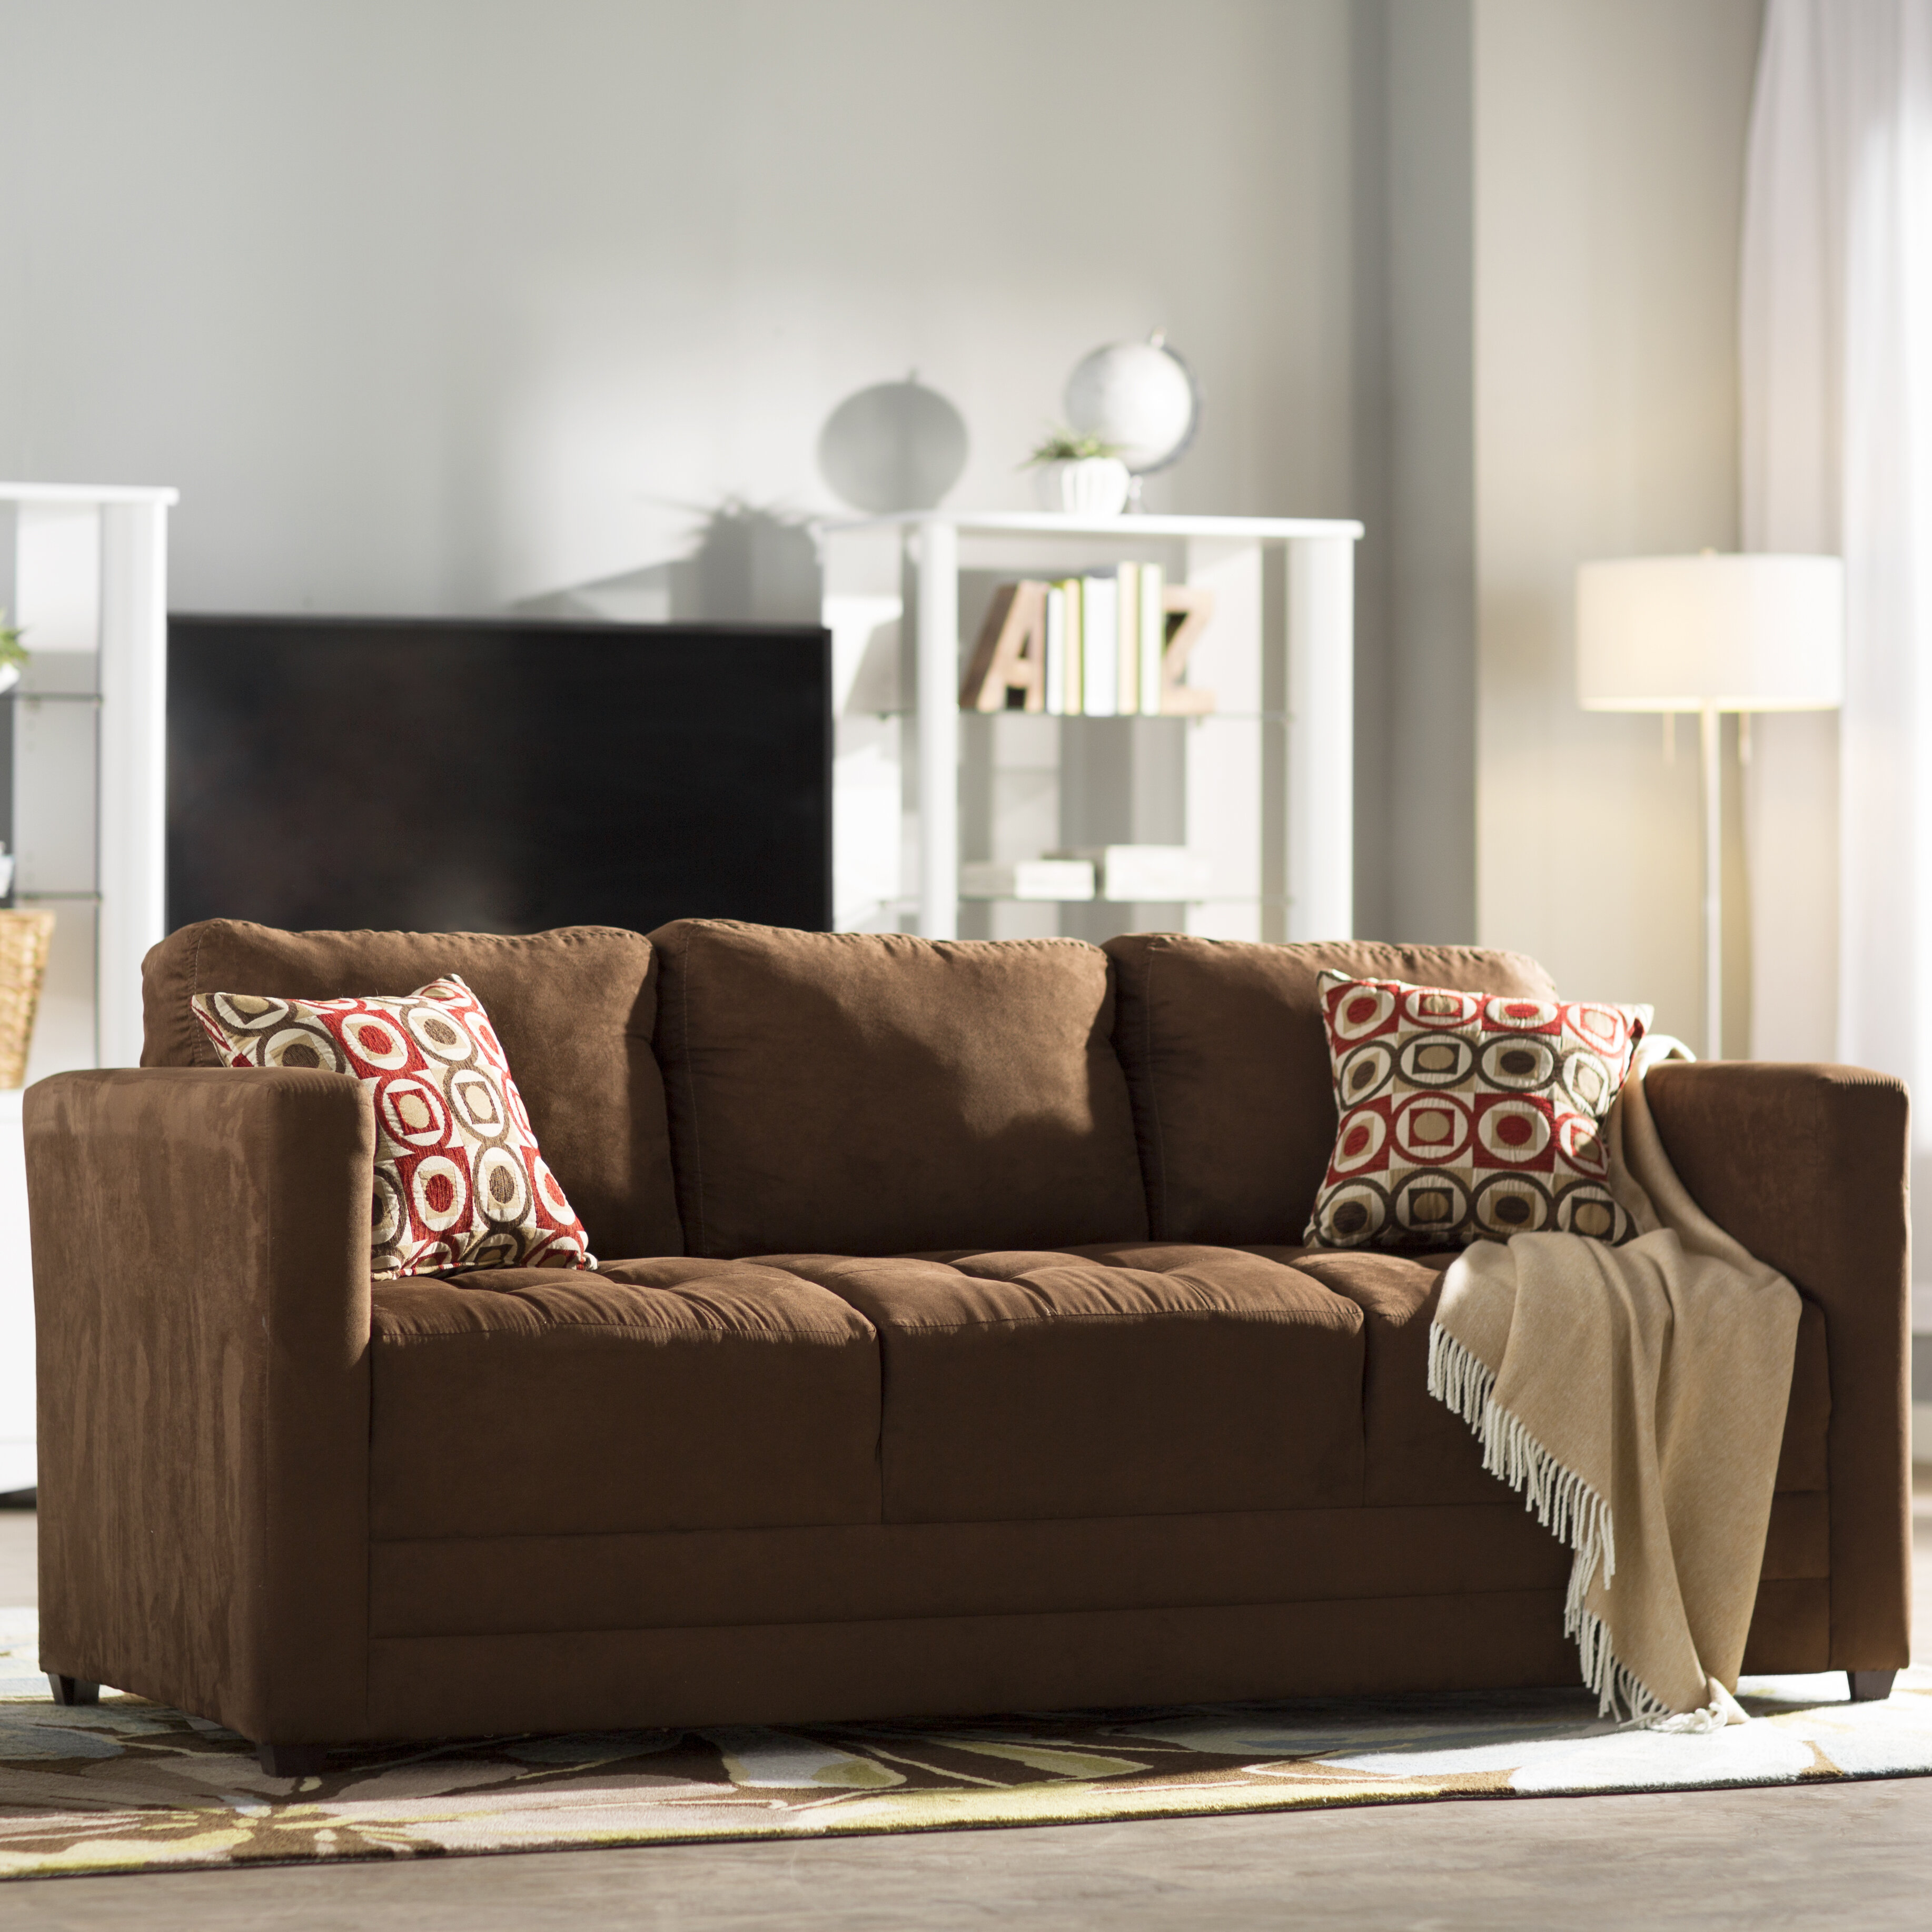 loveseat wood and stationary apron serta sofa macy my chestnut products by upholstery couch group